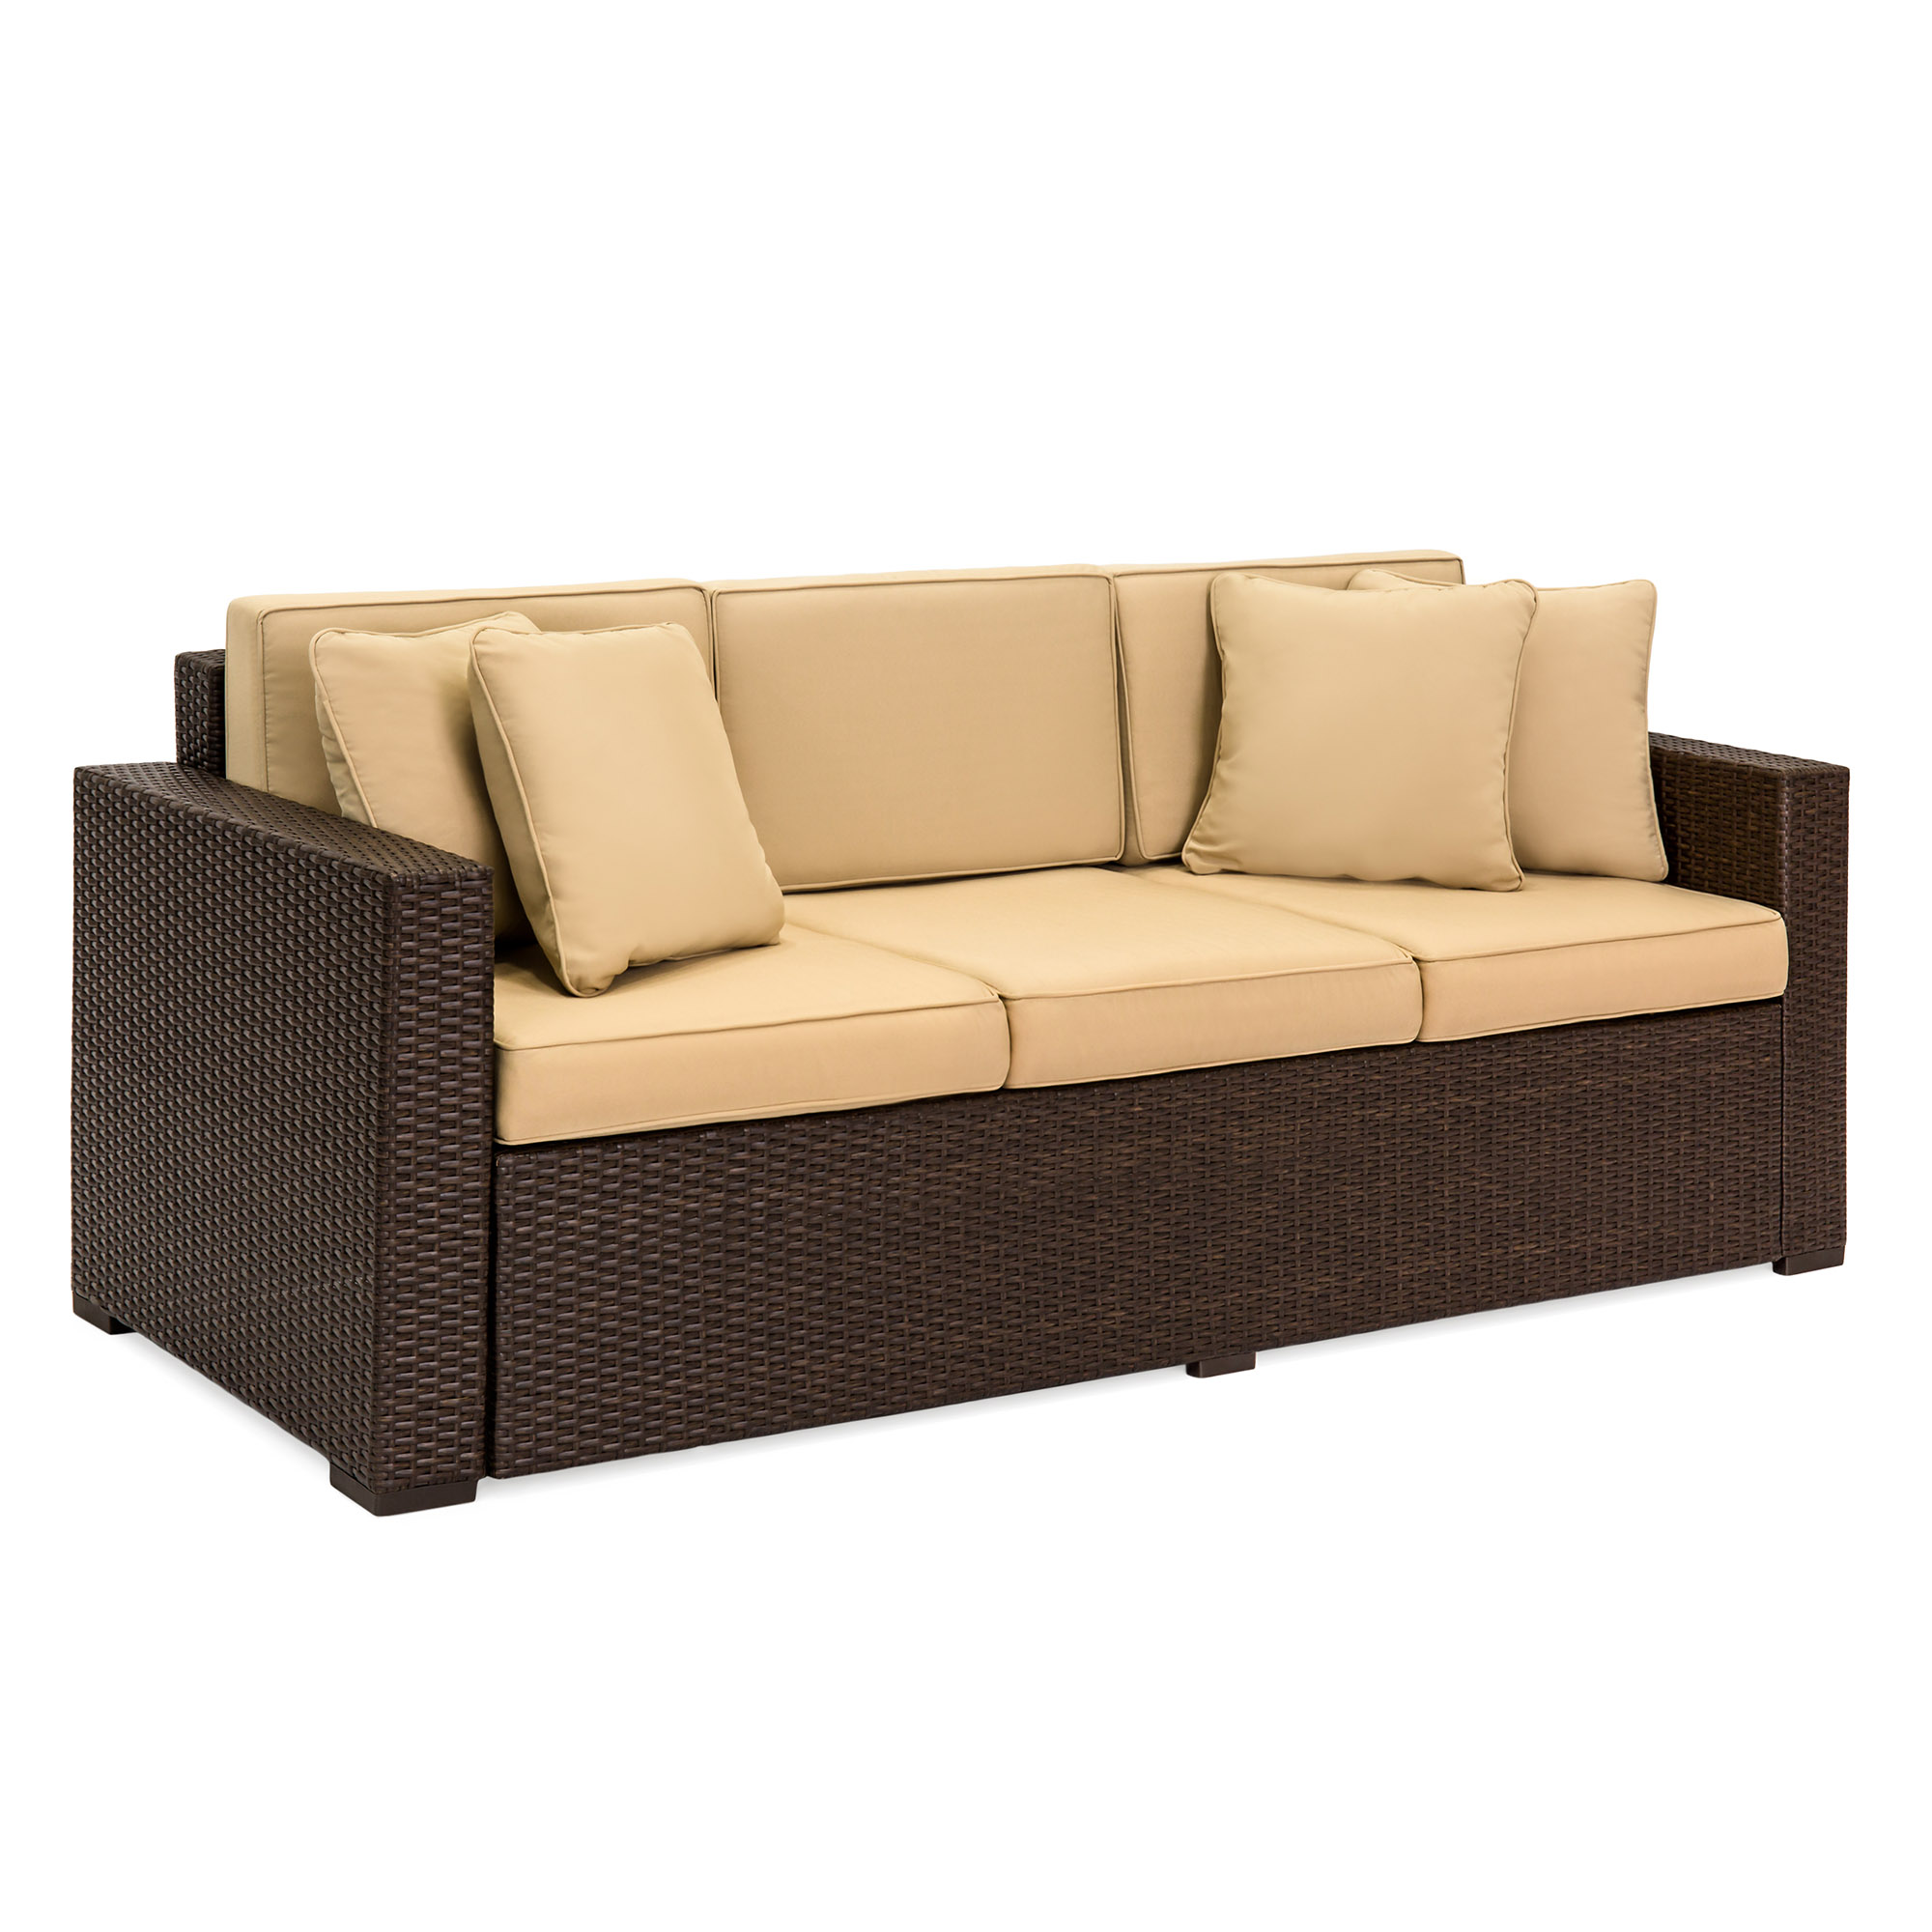 wicker sofas ashley furniture victory chocolate sofa outdoor patio 3 seater luxury